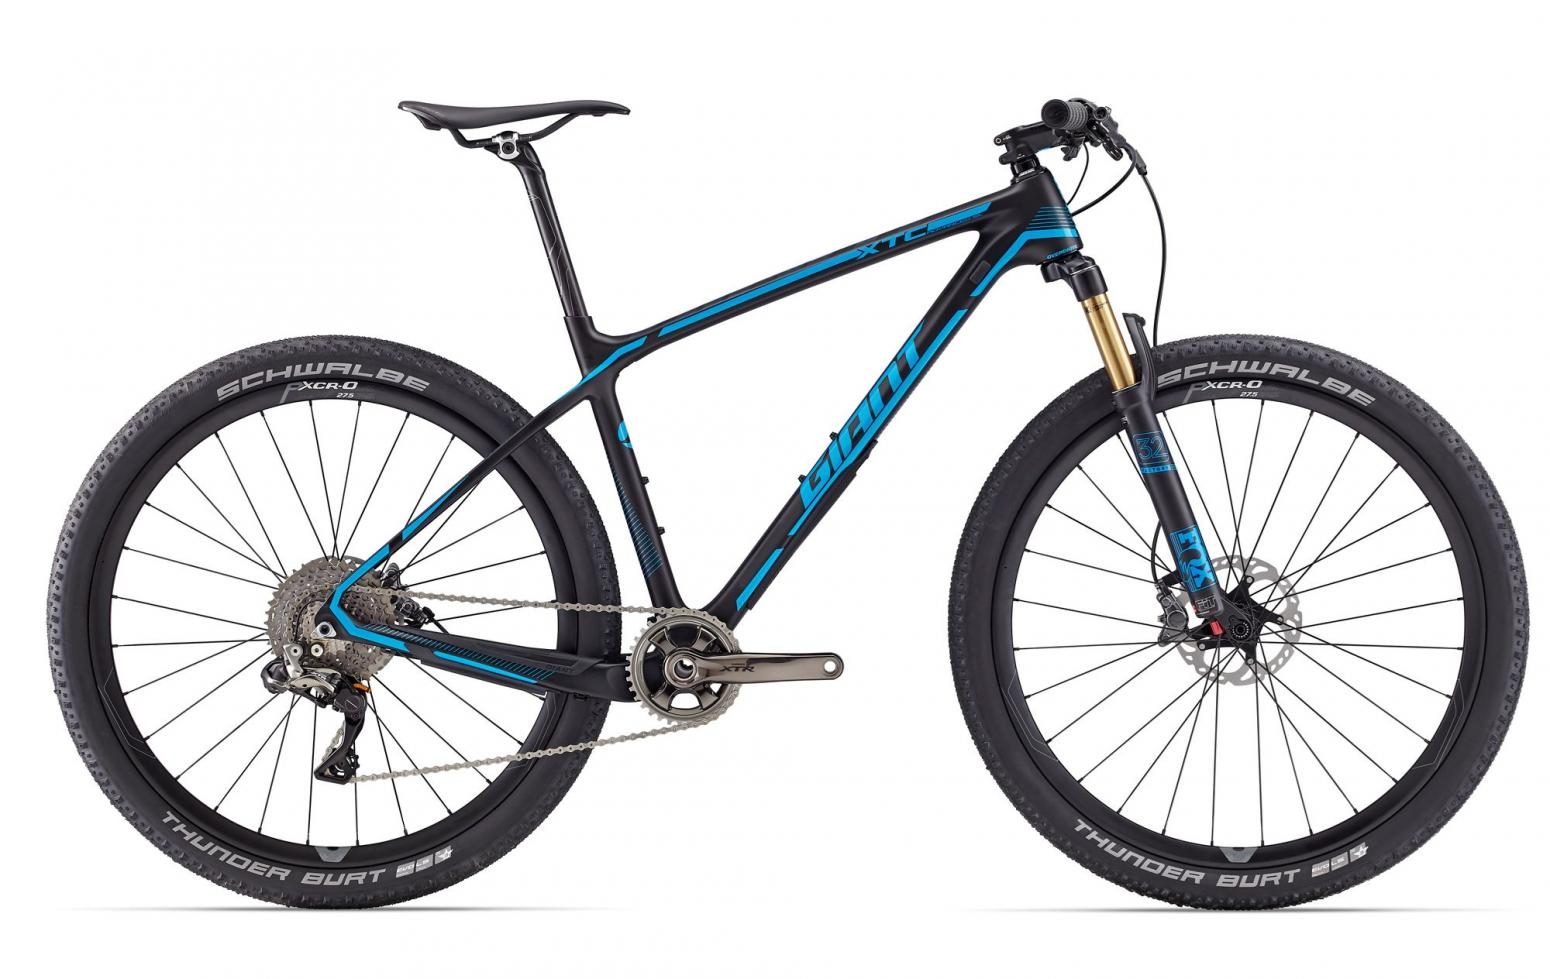 Giant MTB Trail/Race XtC Advanced SL 27.5 0 2016